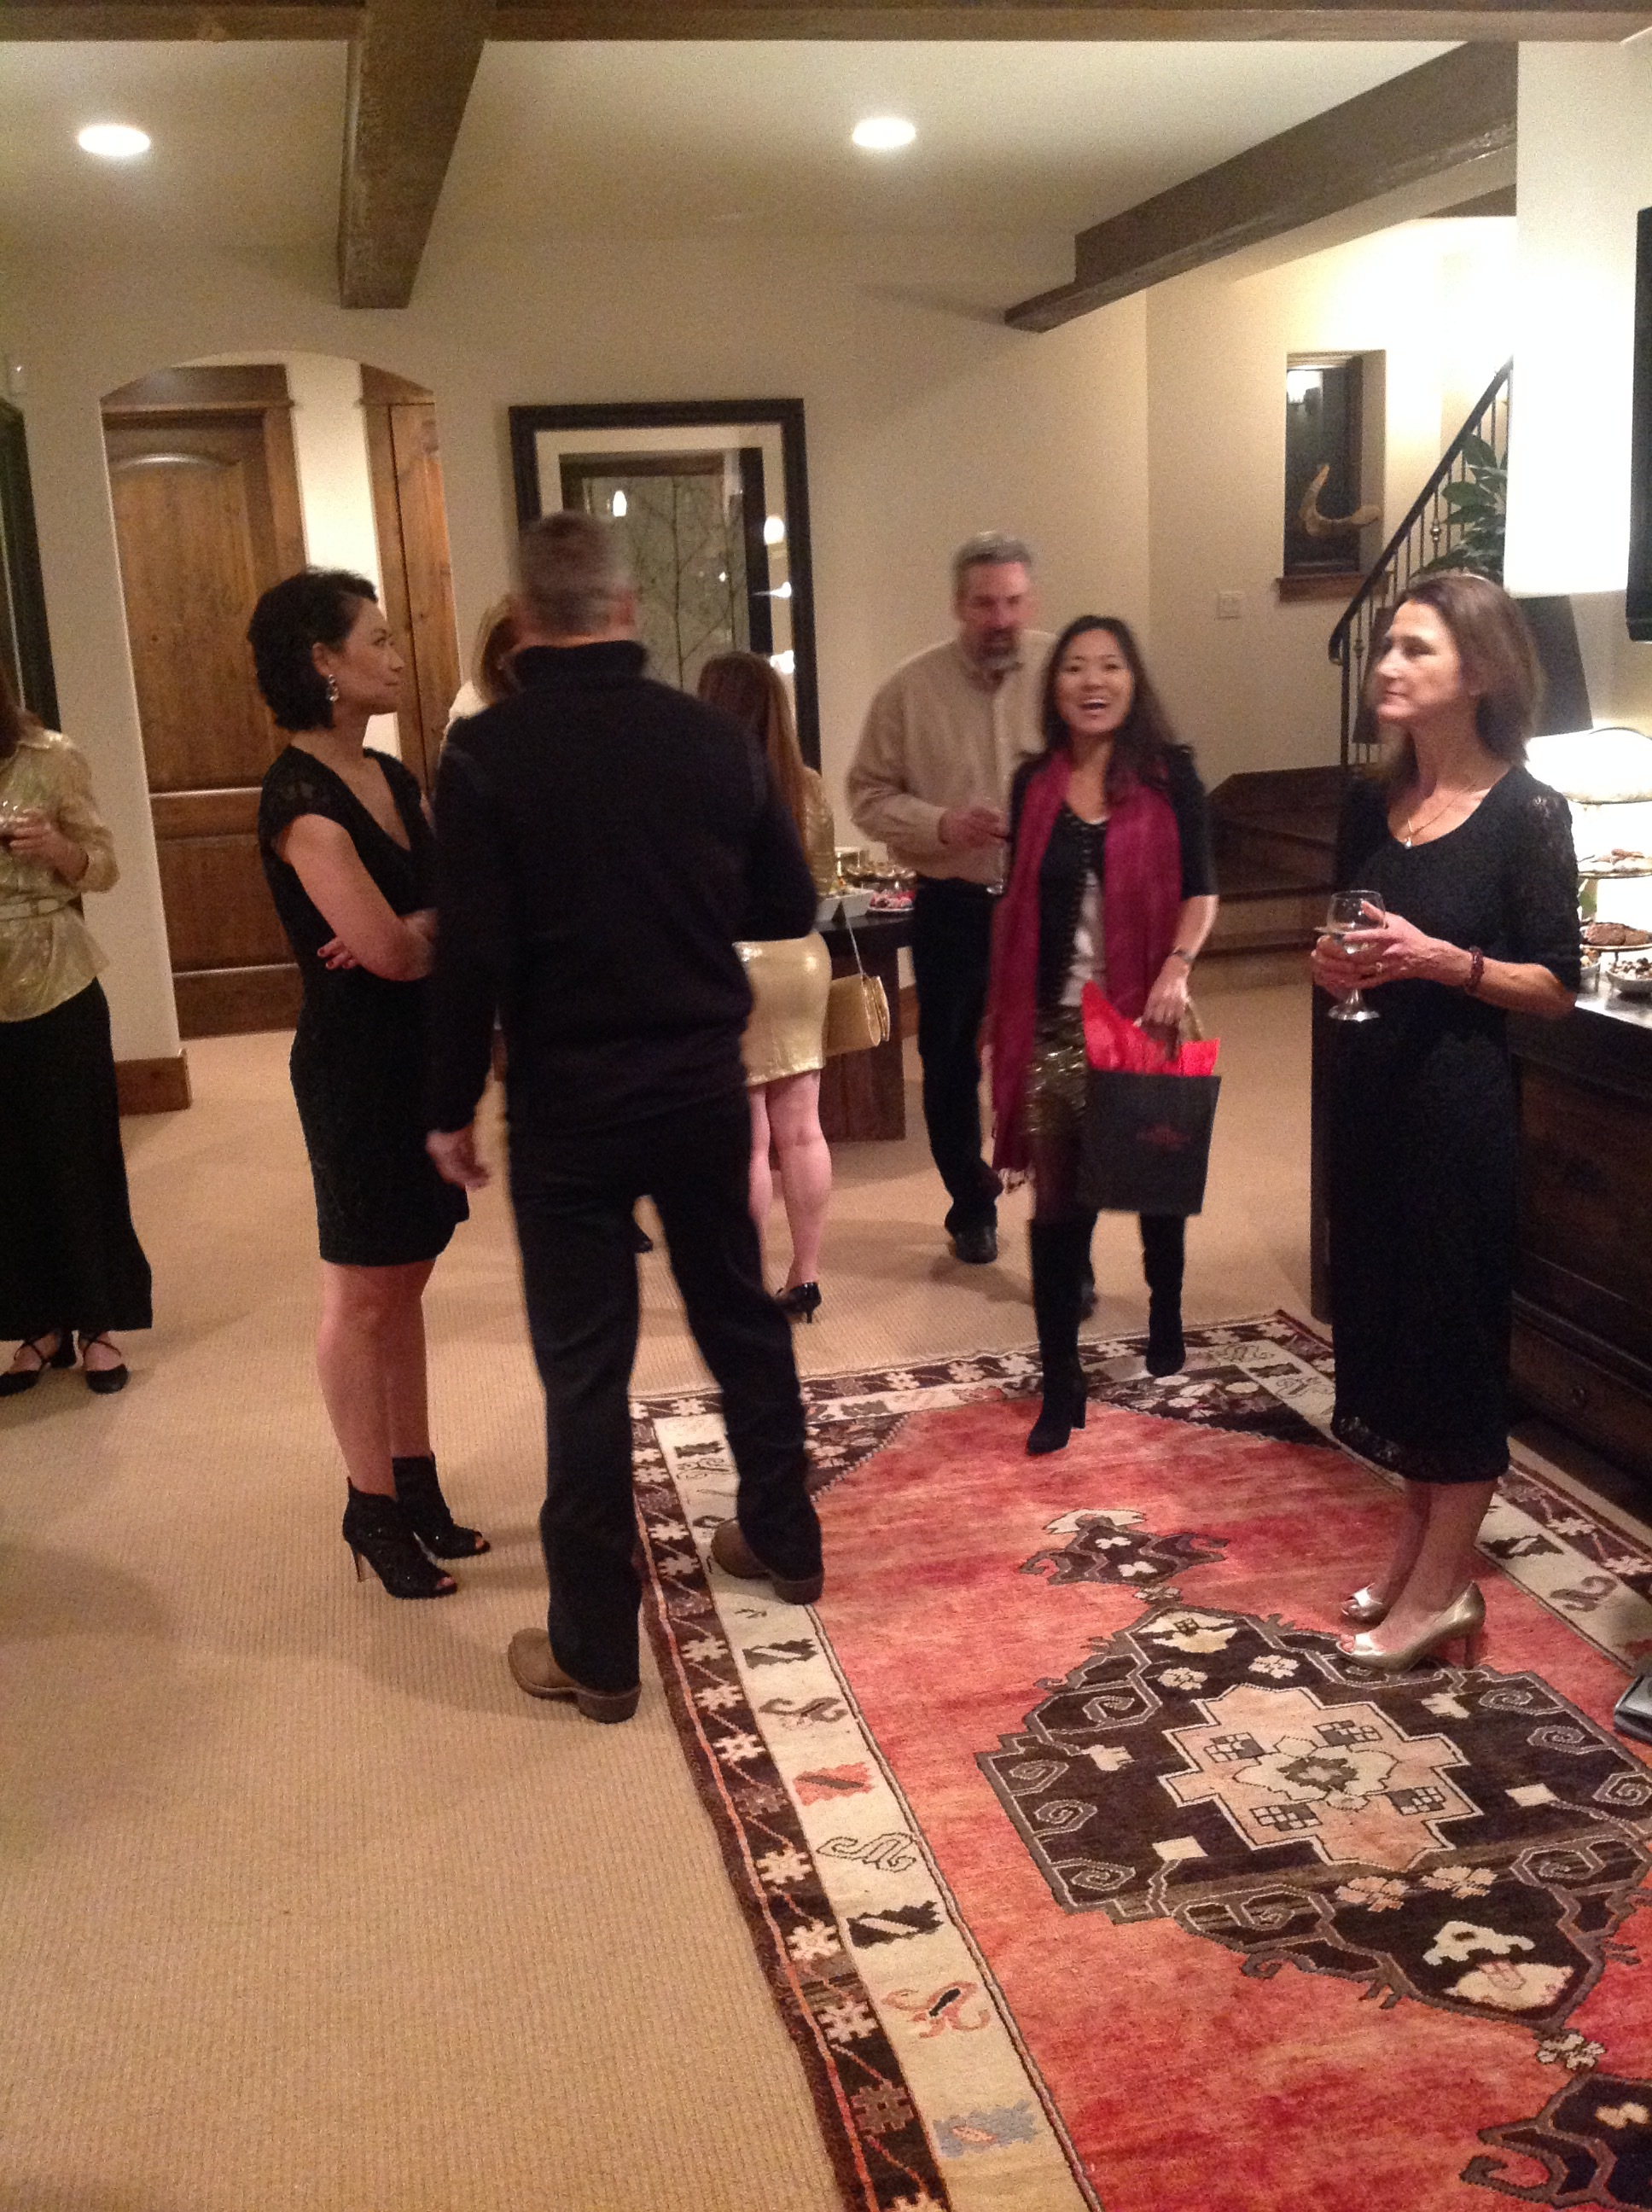 Tsering Elmblad arrives in the lower area of the home where guests congregate before dinner.